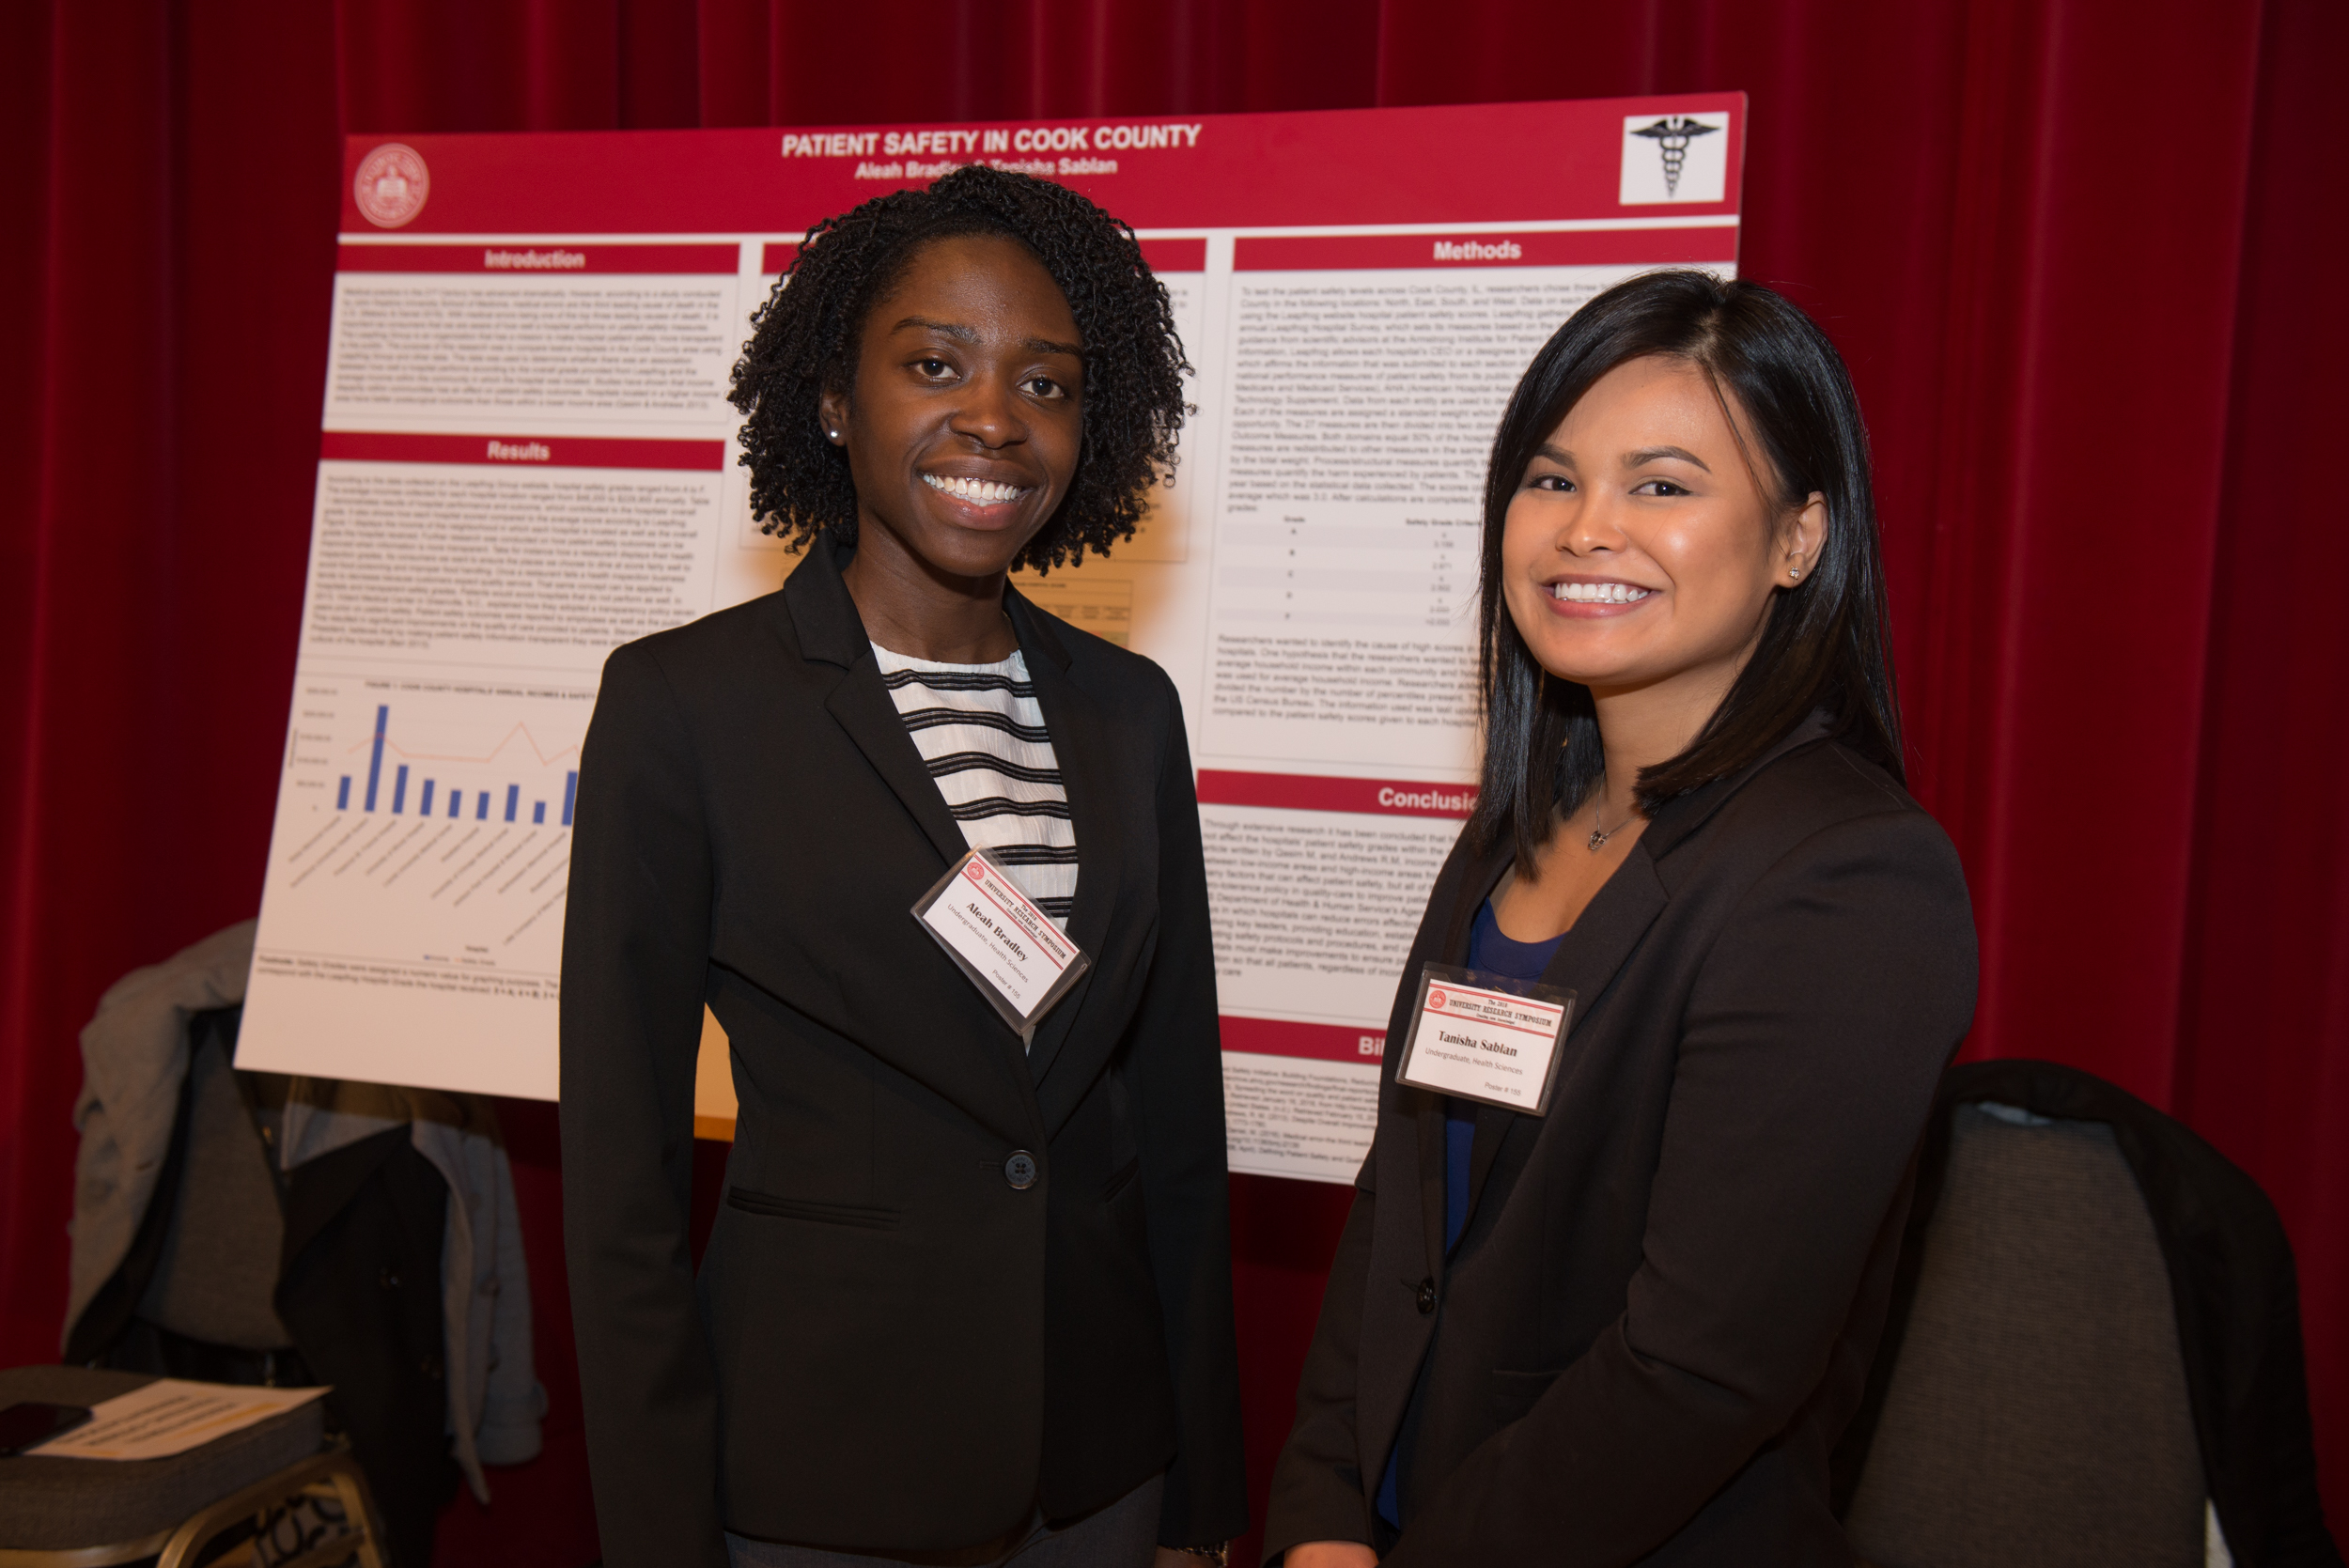 Aleah Bradley and Tanisha Sablan in front of poster